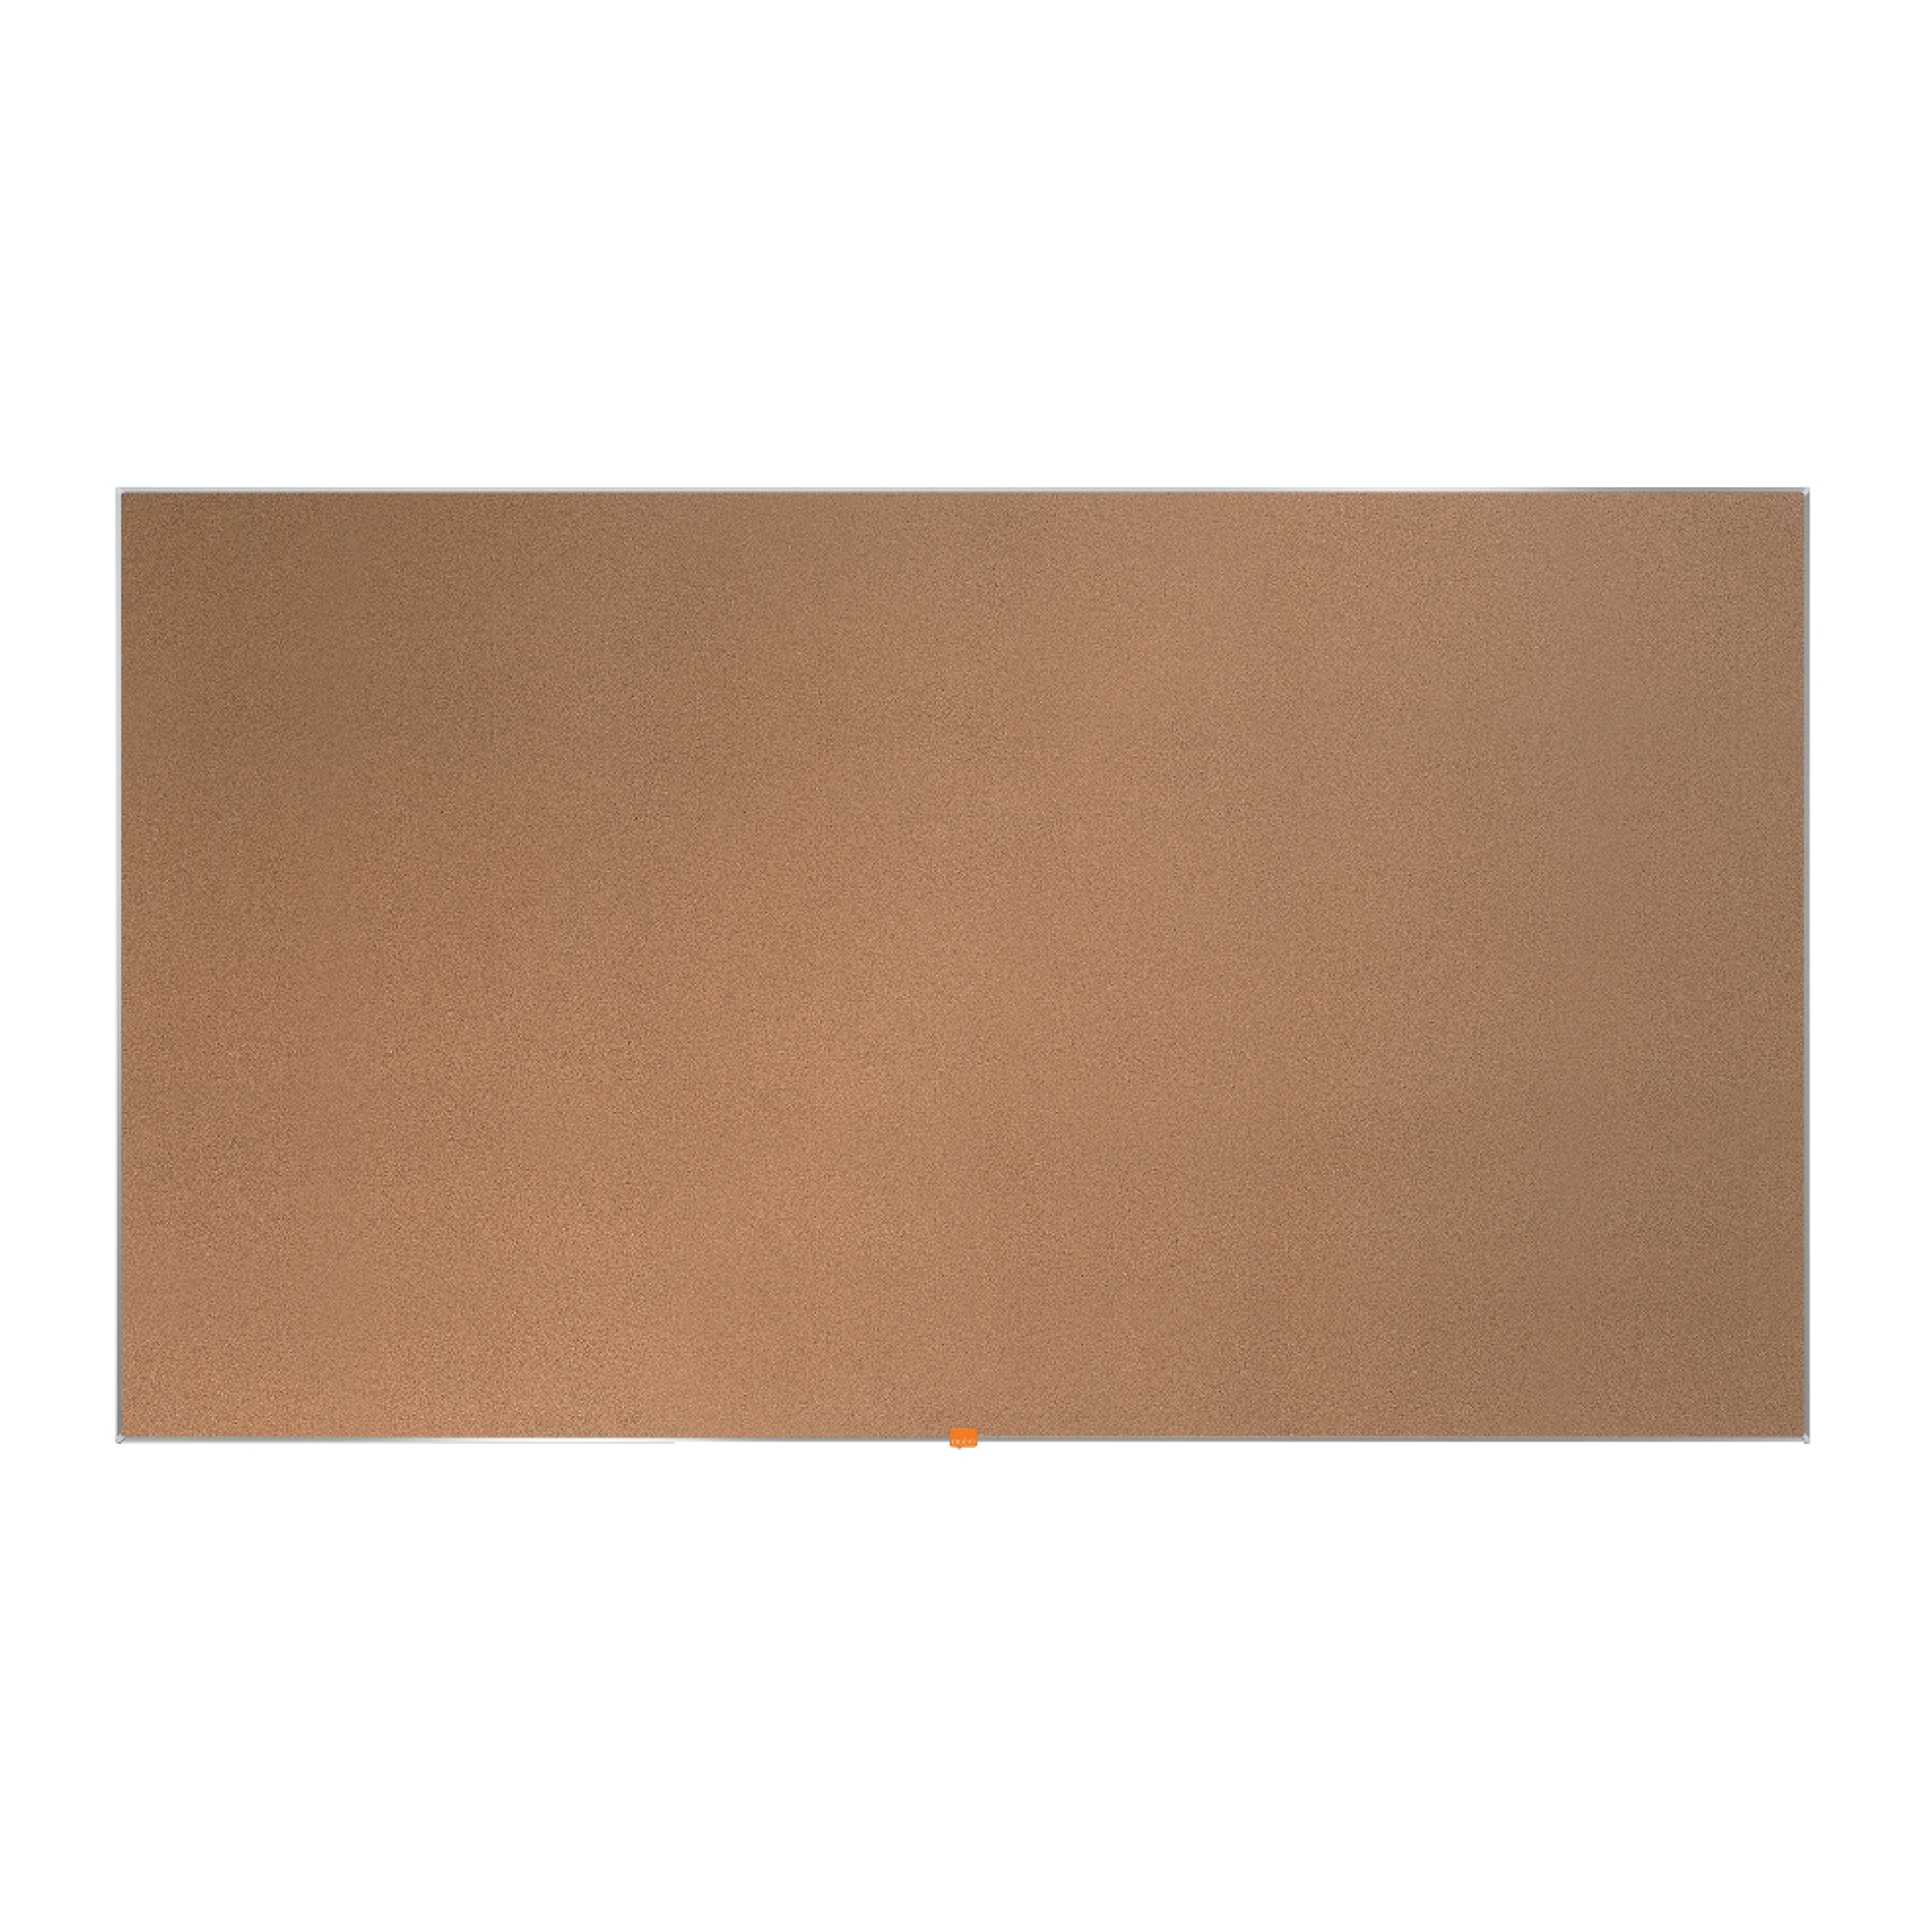 Bulletin boards or accessories Nobo 85 inch Widescreen Cork Notice Board 1880x1060mm Ref 1905309